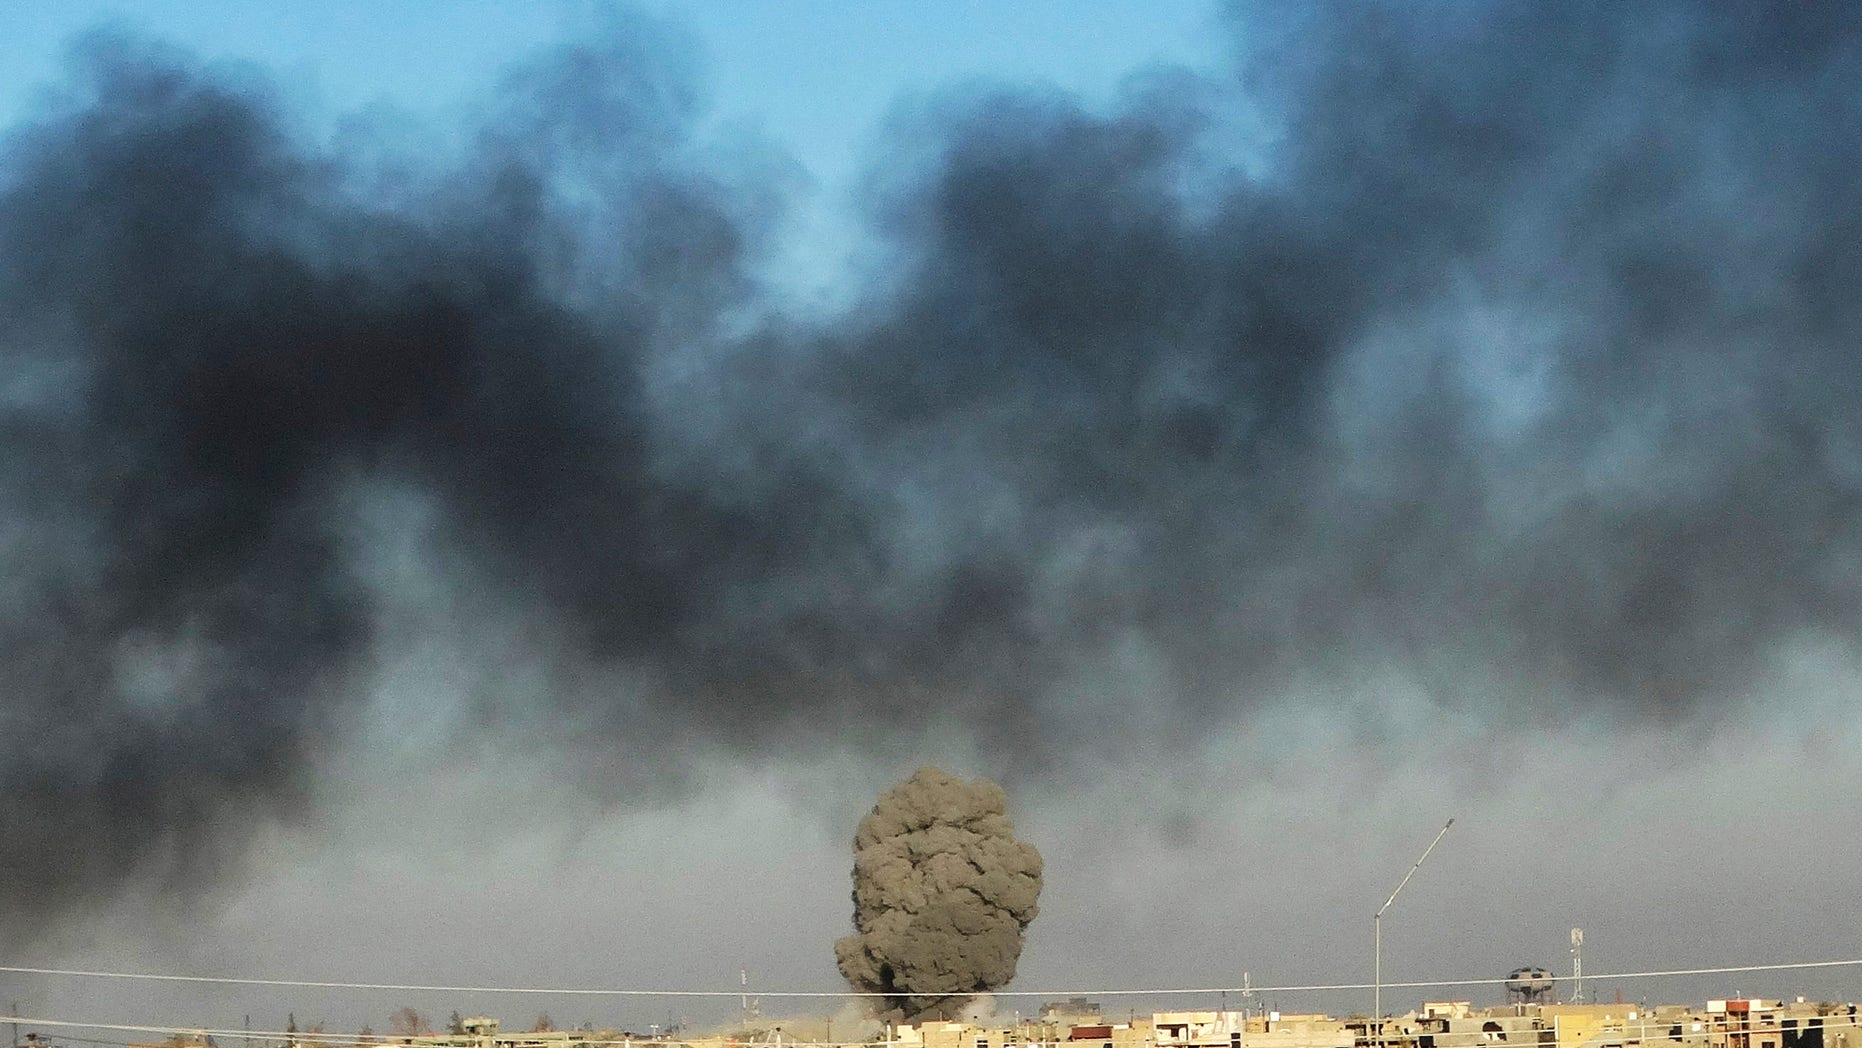 FILE: Dec. 25, 2015: Smoke from Islamic State positions following a U.S.-led coalition airstrike as Iraqi Security forces advance their position in downtown Ramadi, 70 miles west of Baghdad, Iraq. (AP)